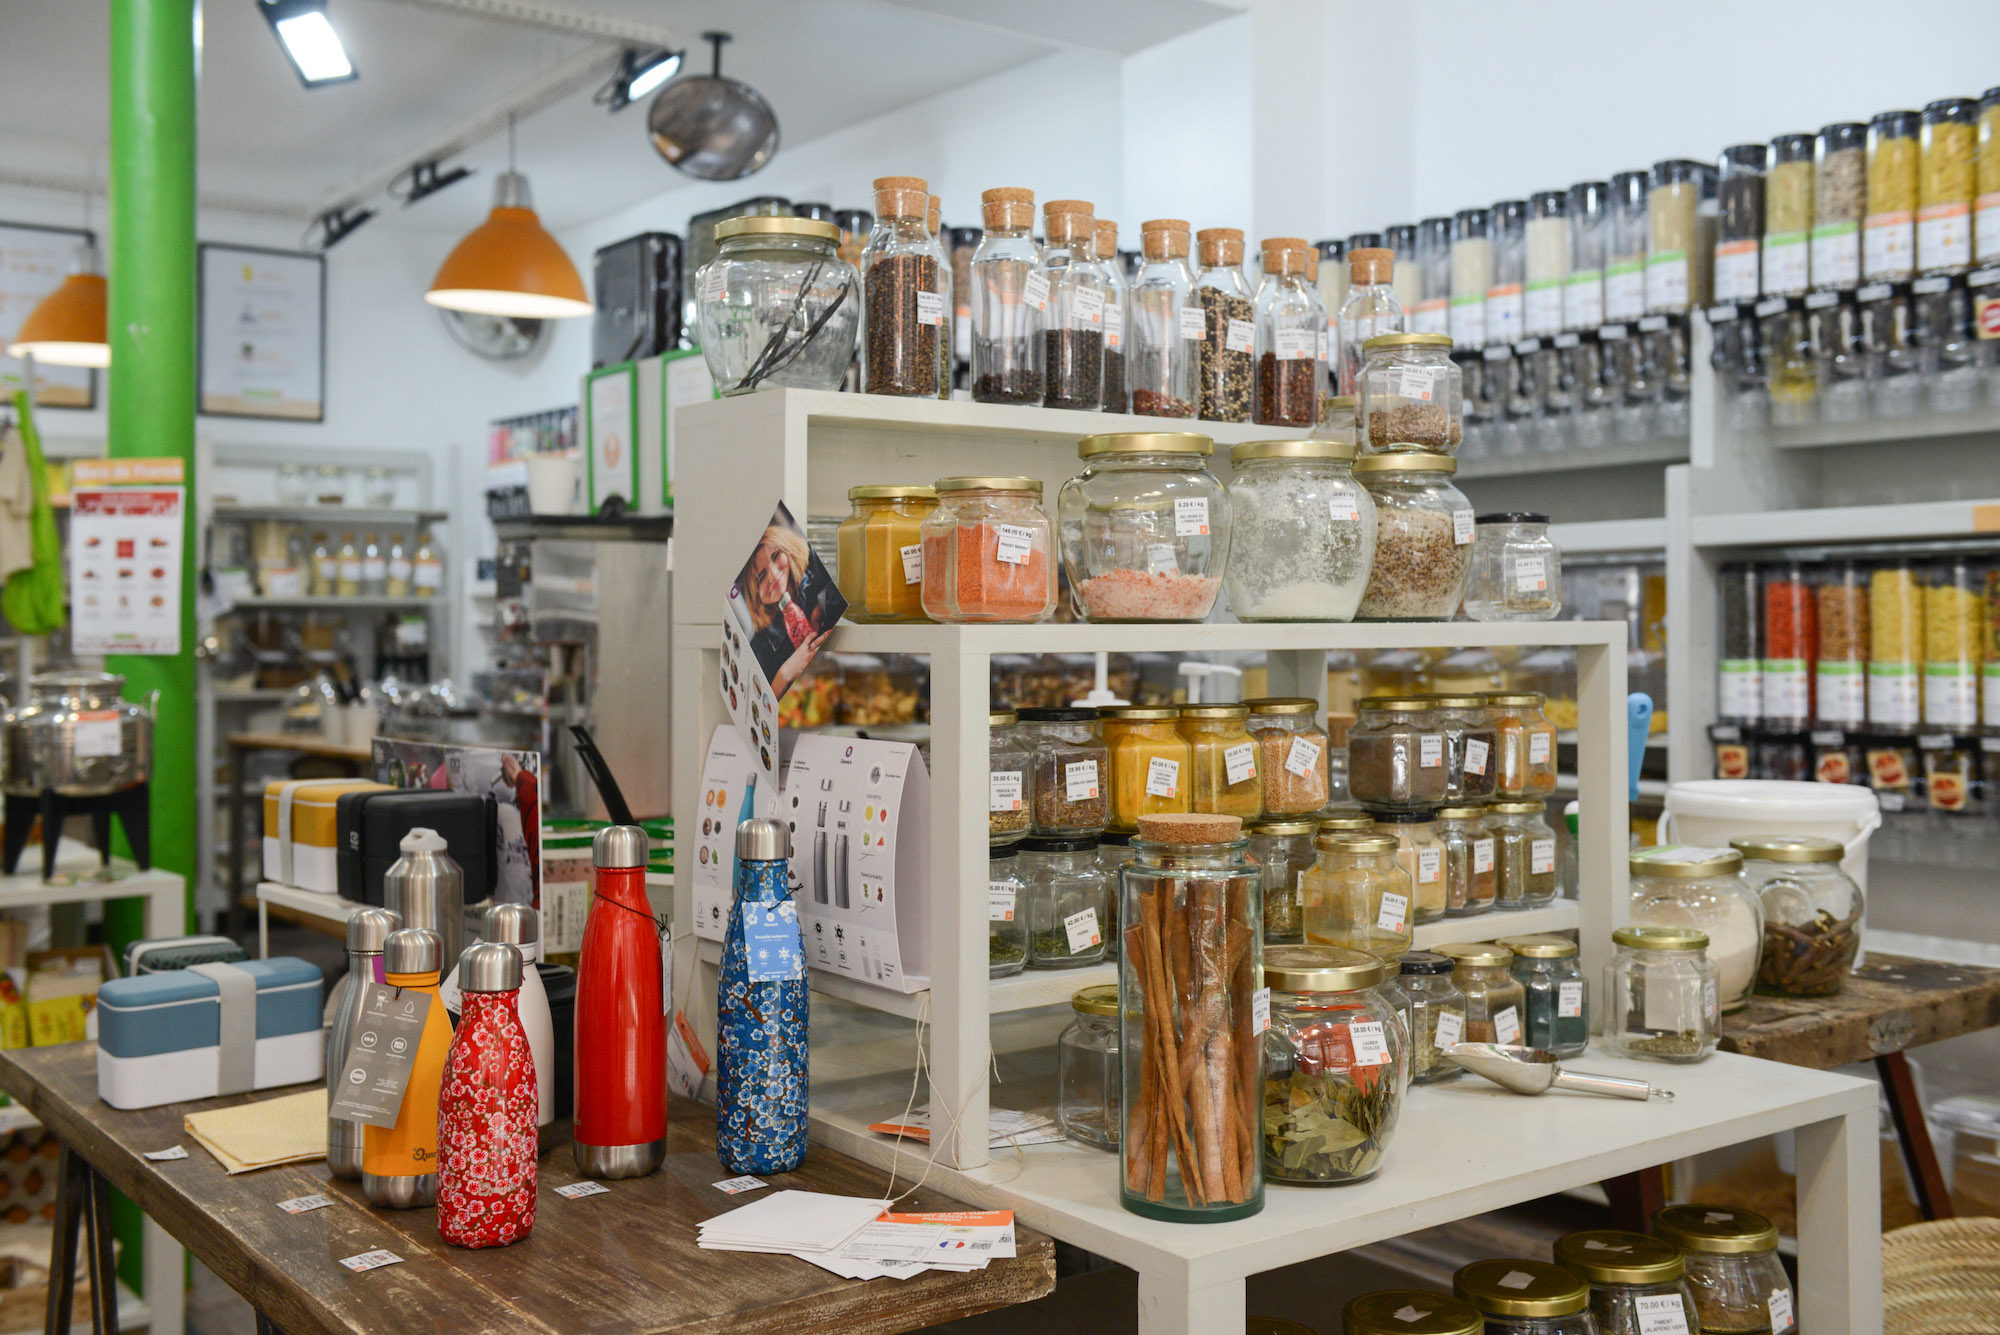 For zero-waste shopping in Paris, head to Day by Day, a bulk-buying haven of package-free groceries.